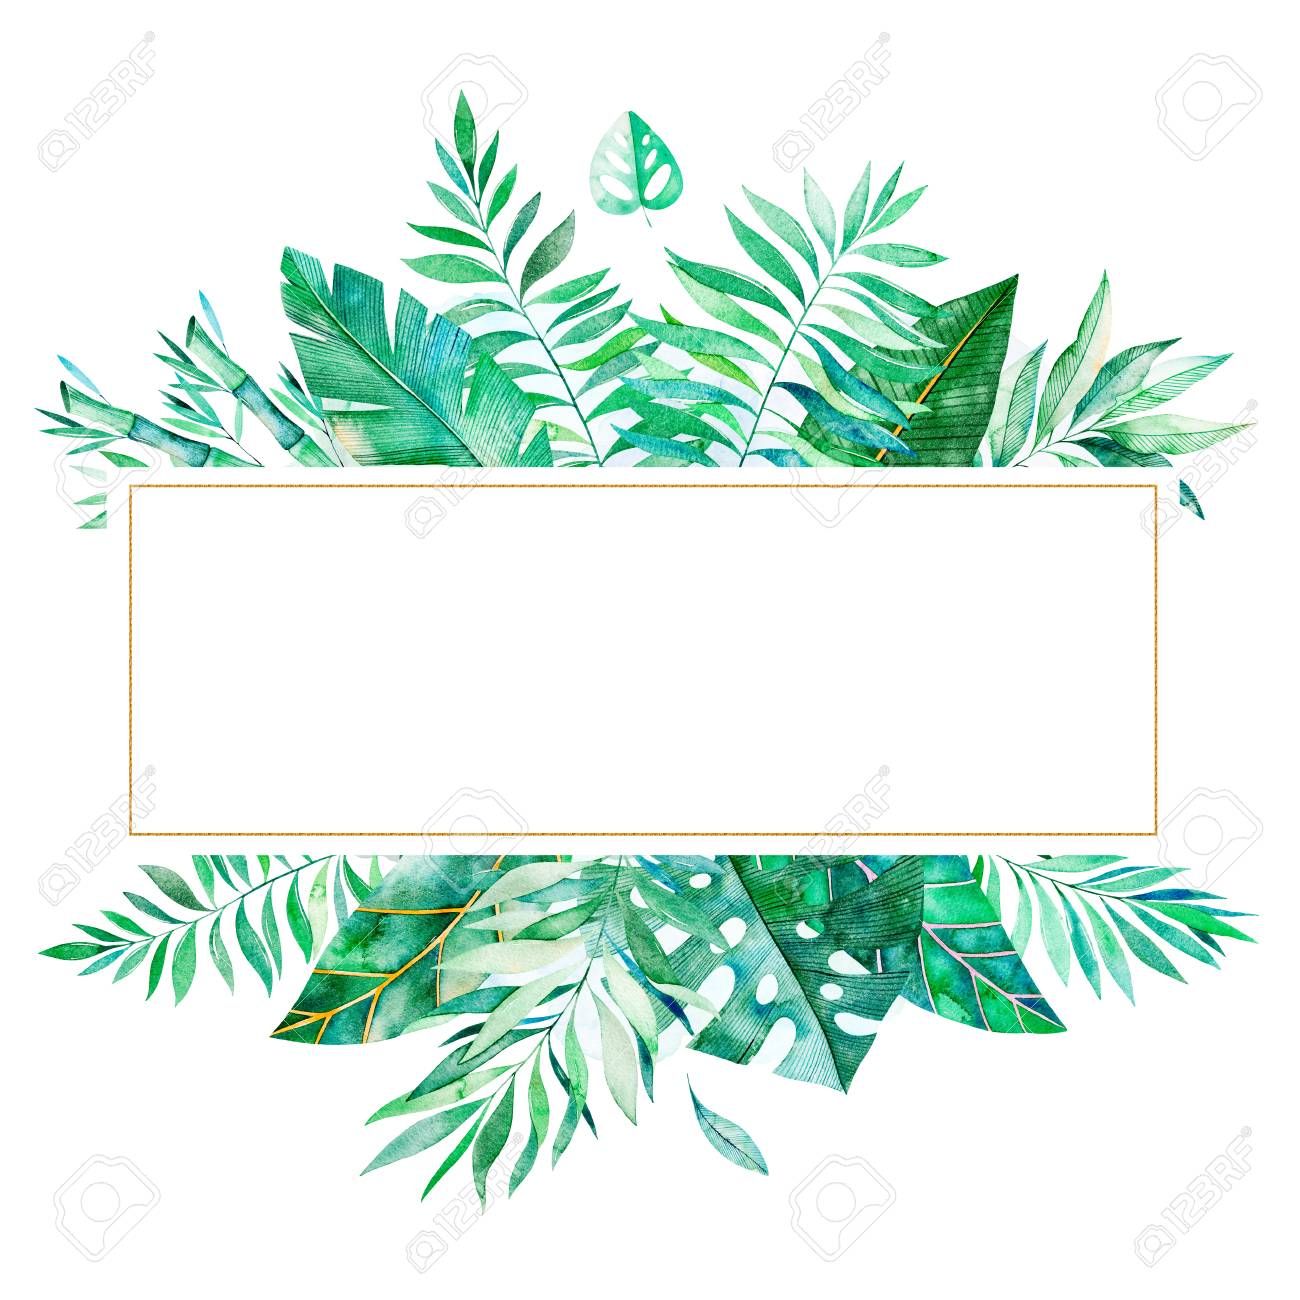 Colorful Floral Frame With Green Tropical Leaves Tropical Forest Stock Photo Picture And Royalty Free Image Image 96444261 Forest floor the forest floor receives less than 2% of the sunlight and consequently when tropical forests are cut and burned, heavy rains can quickly wash the released nutrients away, leaving the. colorful floral frame with green tropical leaves tropical forest